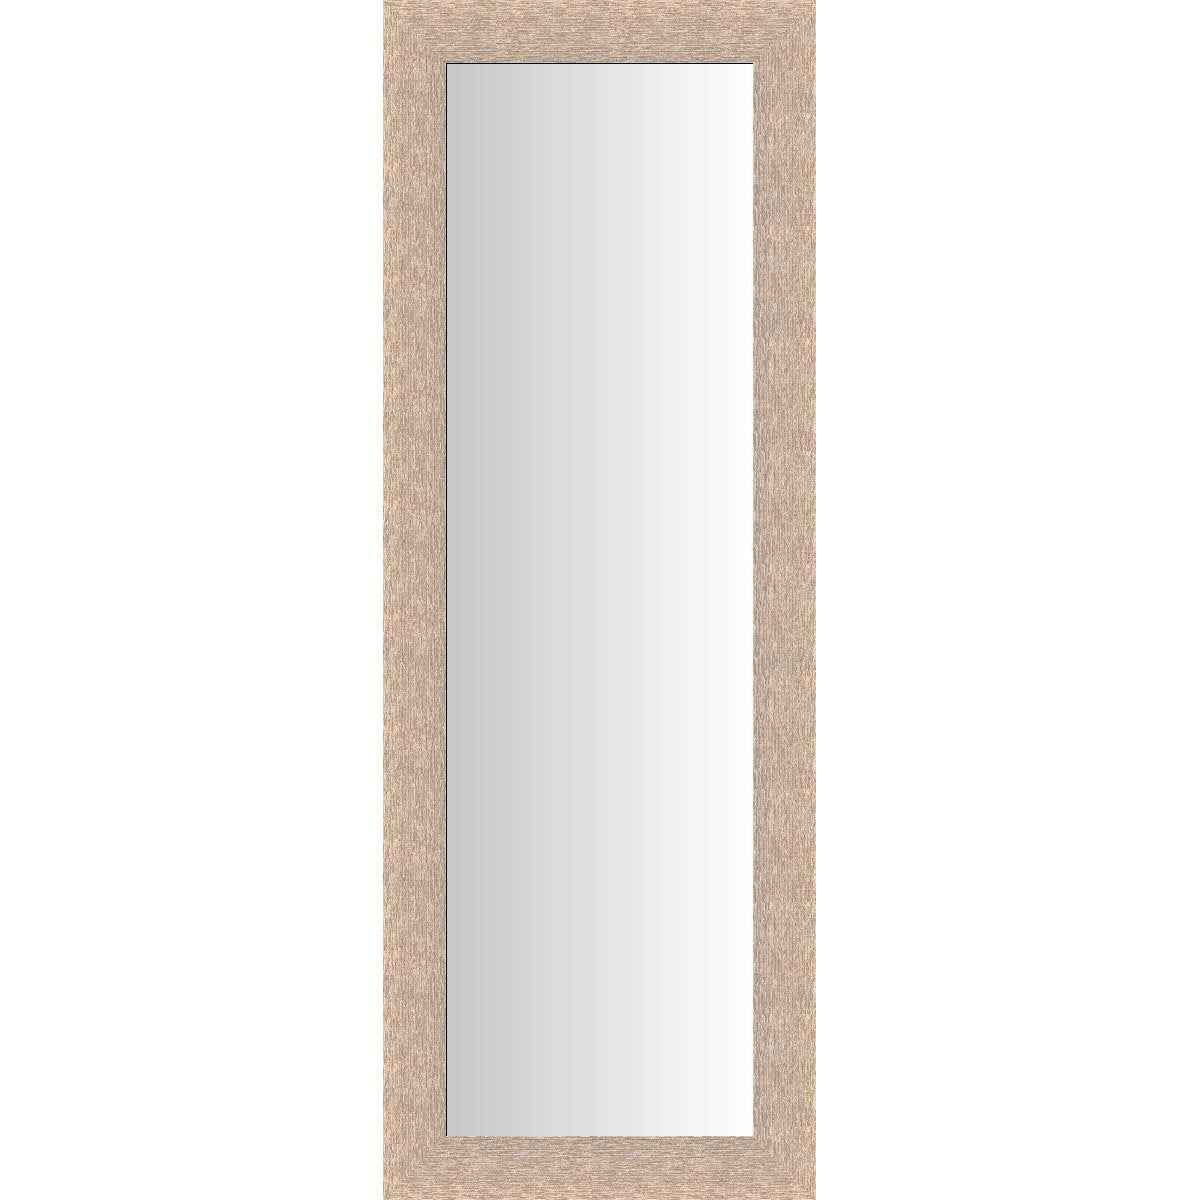 Miroir dublin ch ne clair 40x140 cm leroy merlin for Miroir decoratif leroy merlin